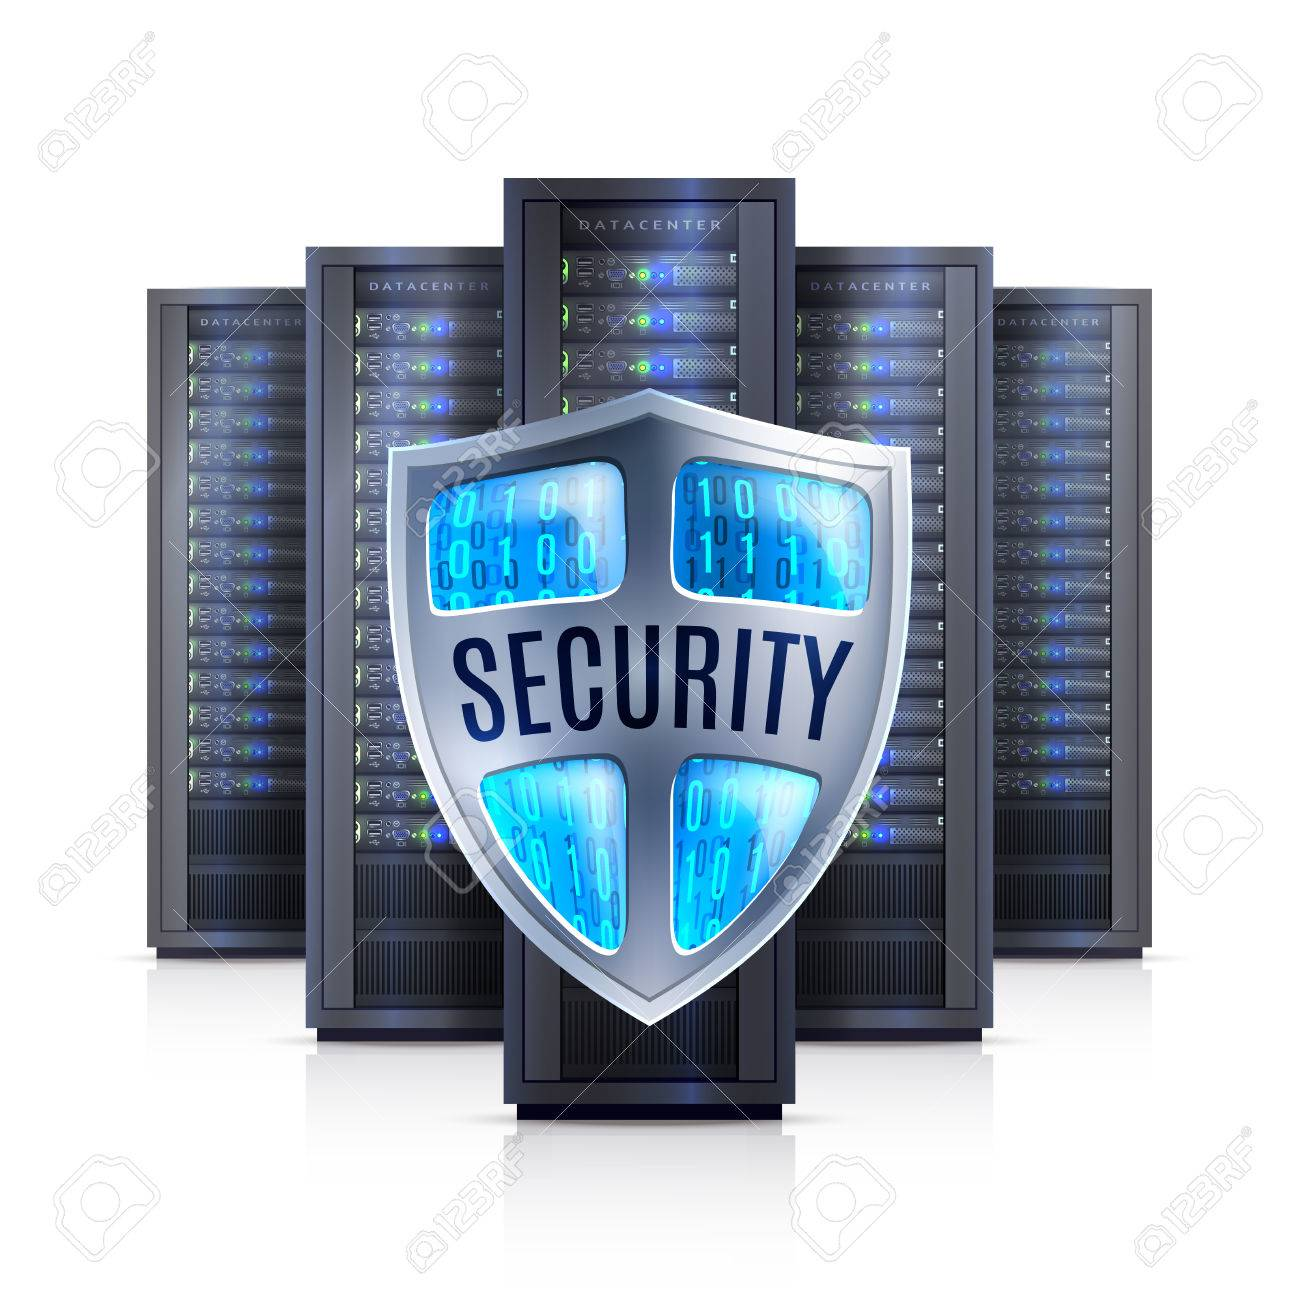 Computer server racks with security shield protection symbol black on white background realistic isolated vector illustration - 54629305